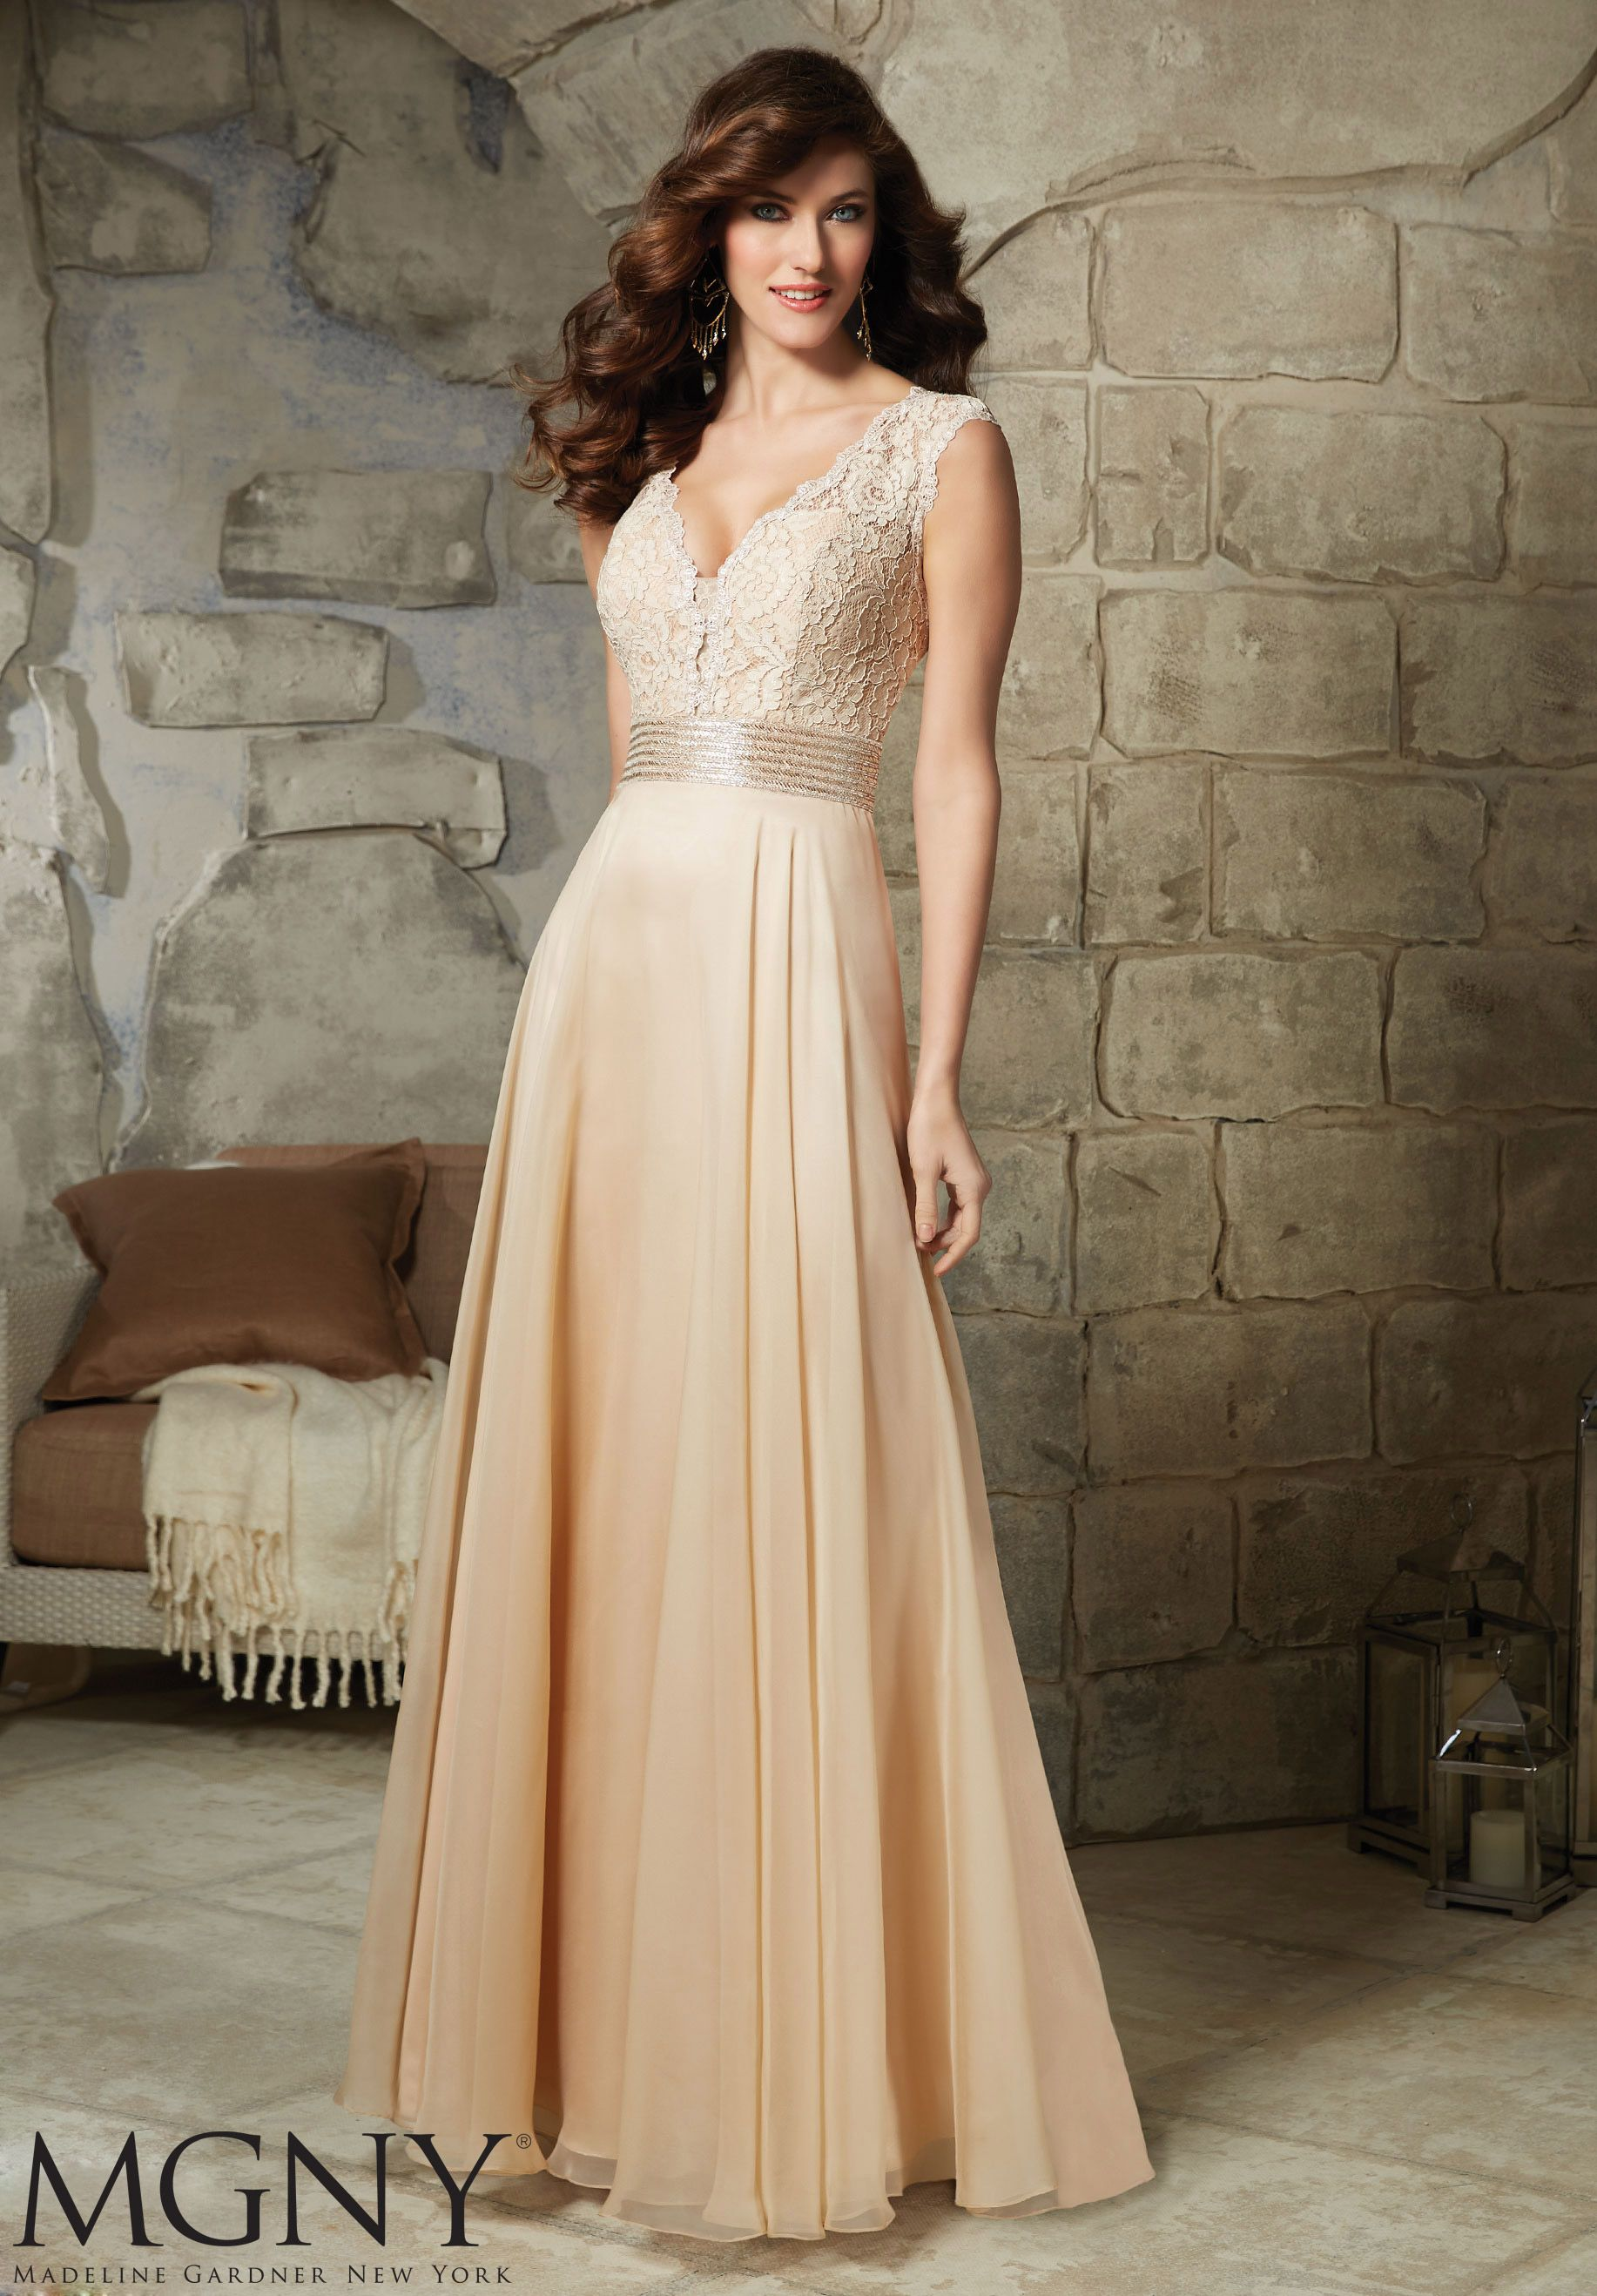 Evening gowns and mother of the bride dresses by mgny lace and